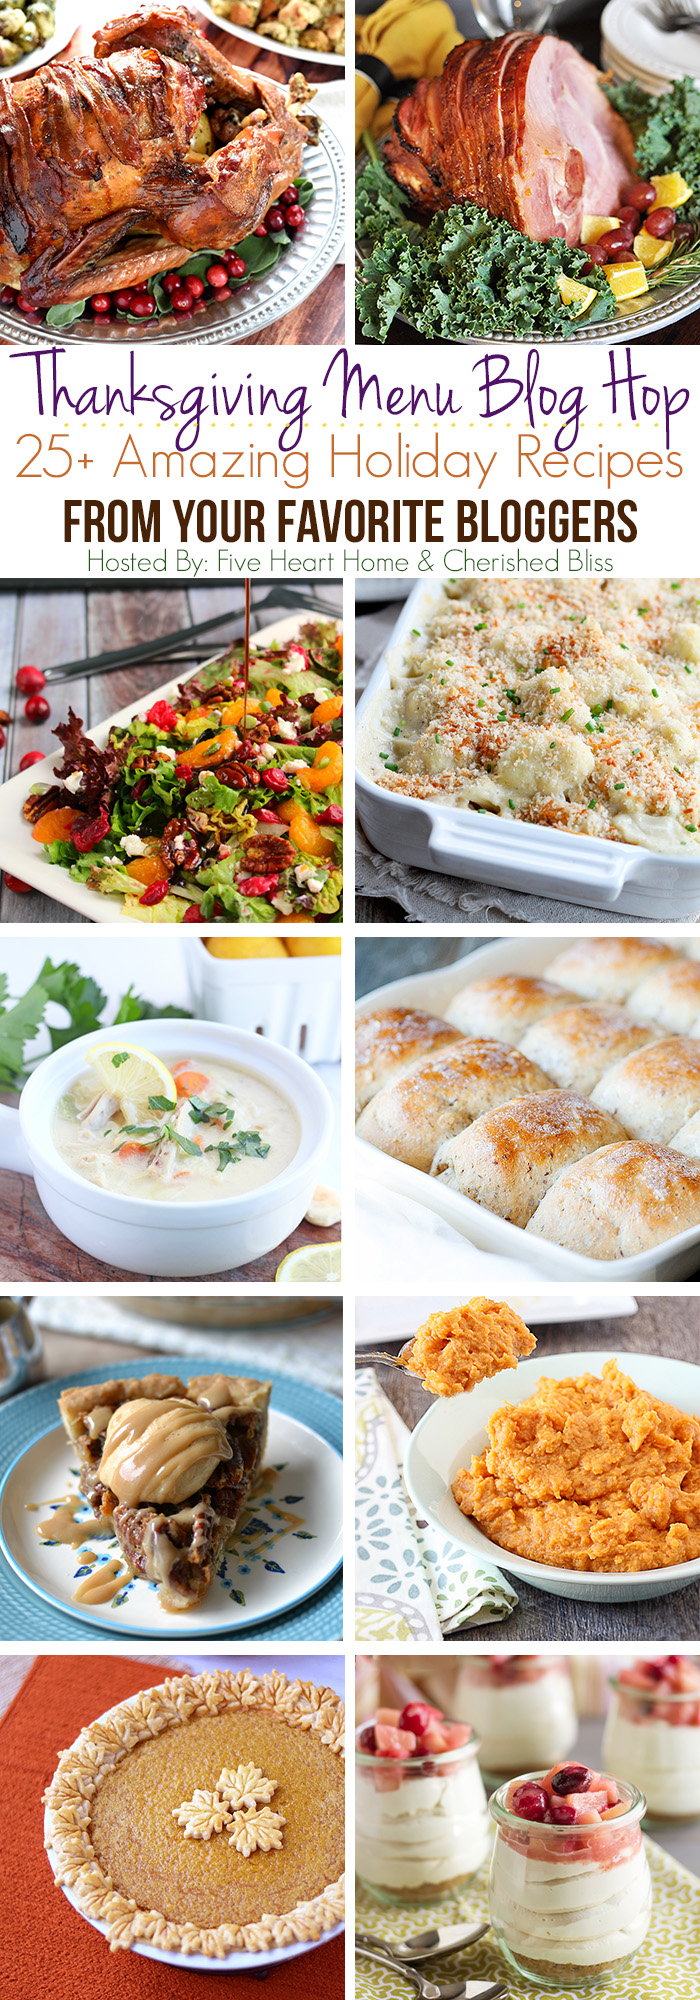 25+ Delicious Thanksgiving Recipes all in one place! Main dishes, sides, drinks, desserts, and more! | LoveGrowsWild.com